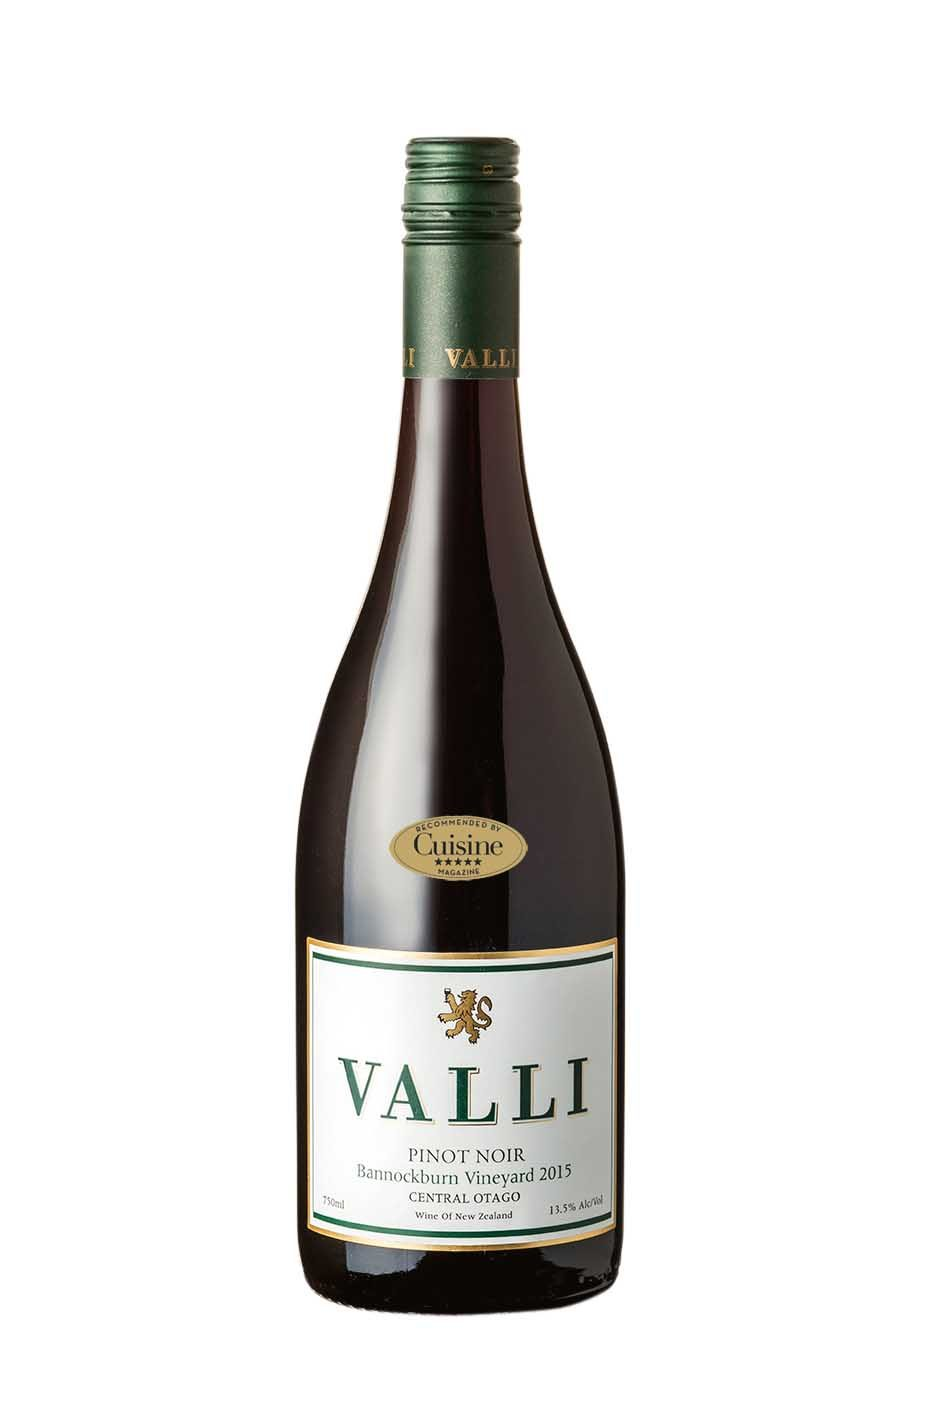 Valli Bannockburn Vineyard Pinot Noir 2015 (Central Otago)